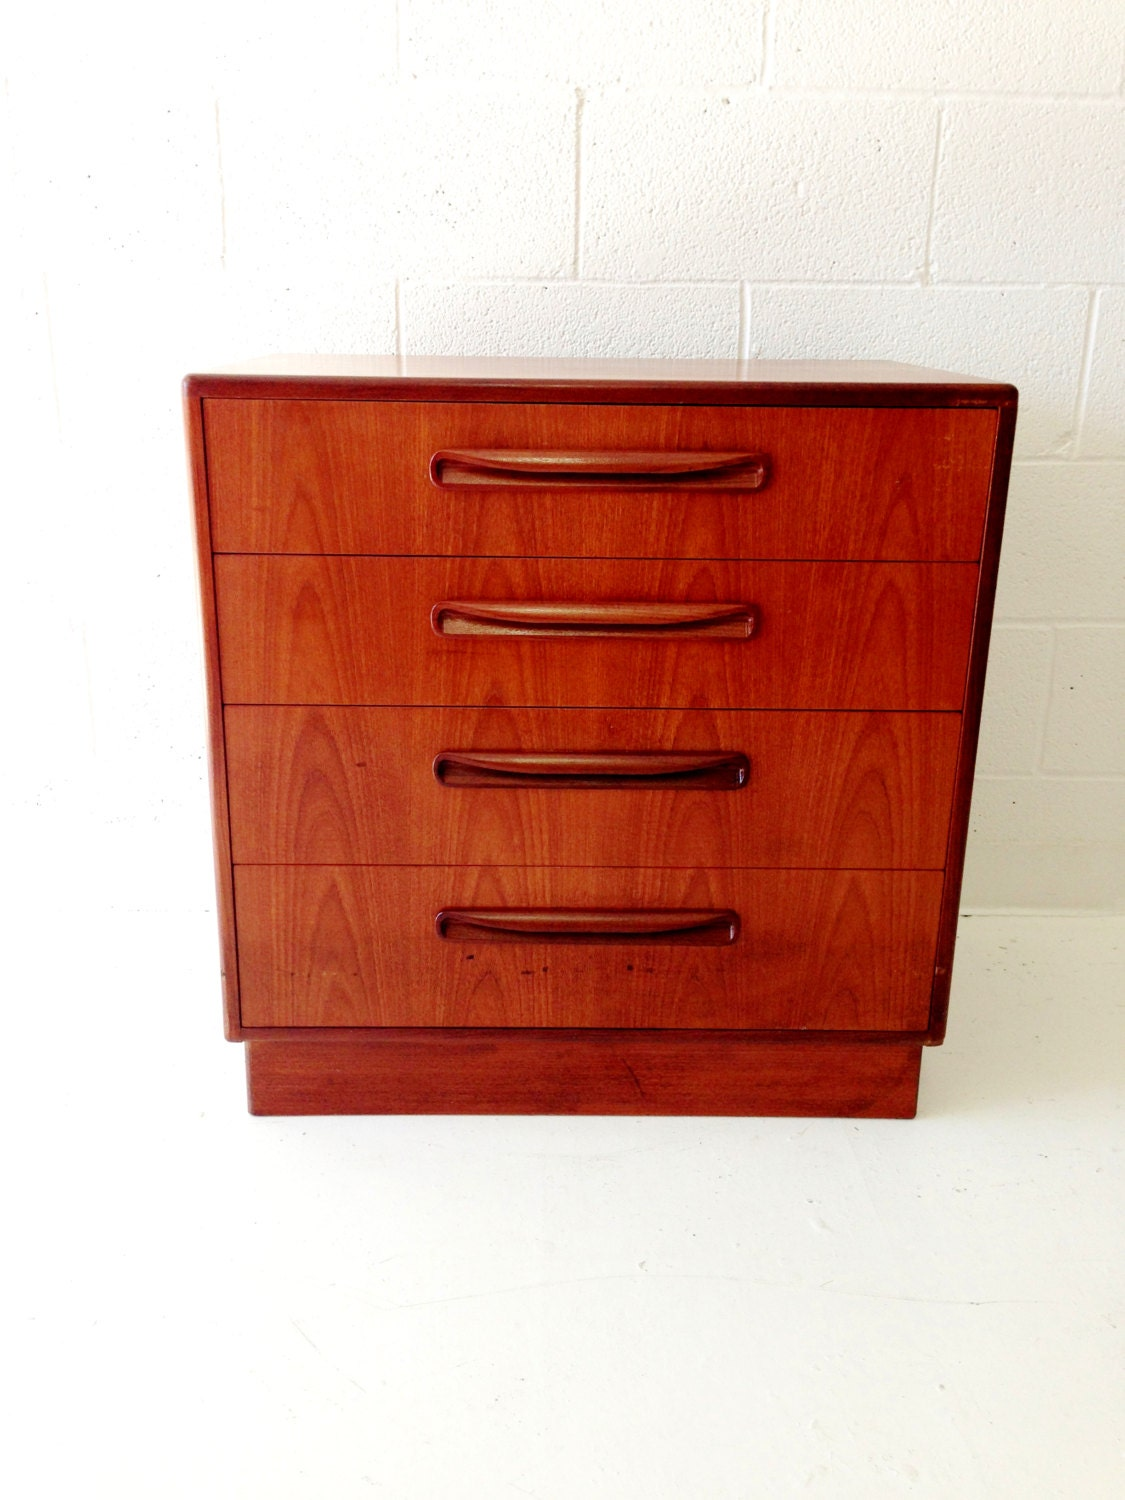 #3A0202 FREE SHIPPING Mid Century Modern Dresser Chest Of Drawers with 1125x1500 px of Best Modern Dresser Drawers 15001125 image @ avoidforclosure.info